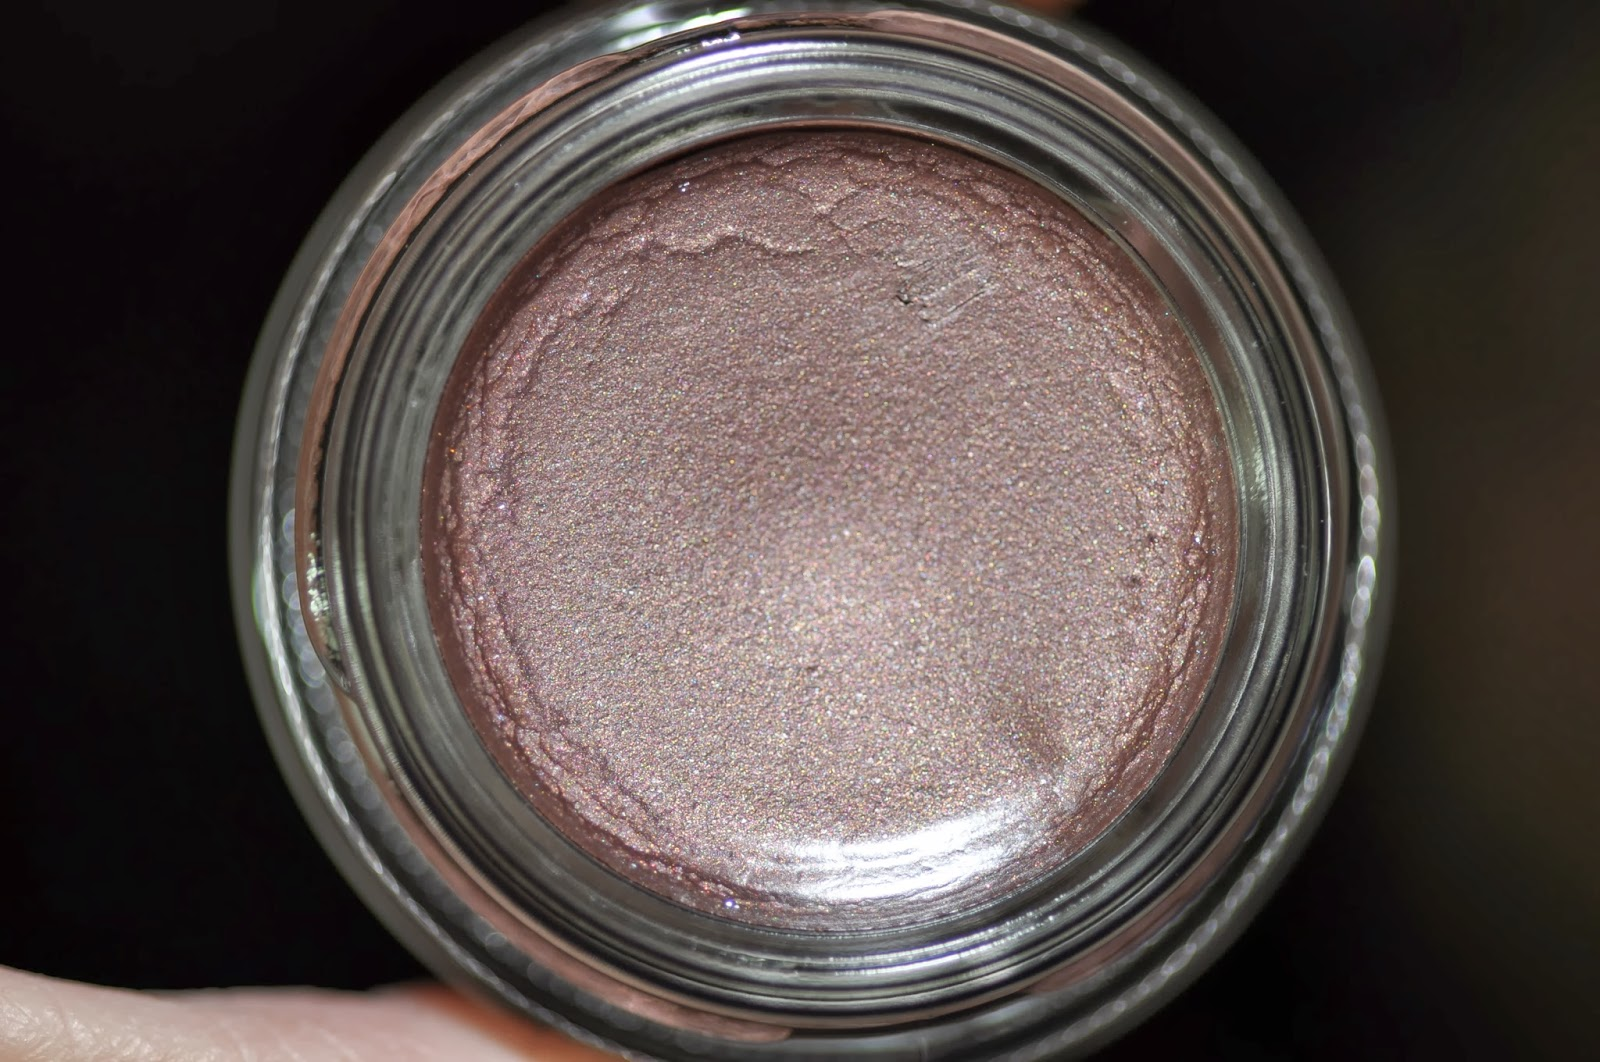 mac 2013 stroke of midnight eye bag violet swatches review the shades of u